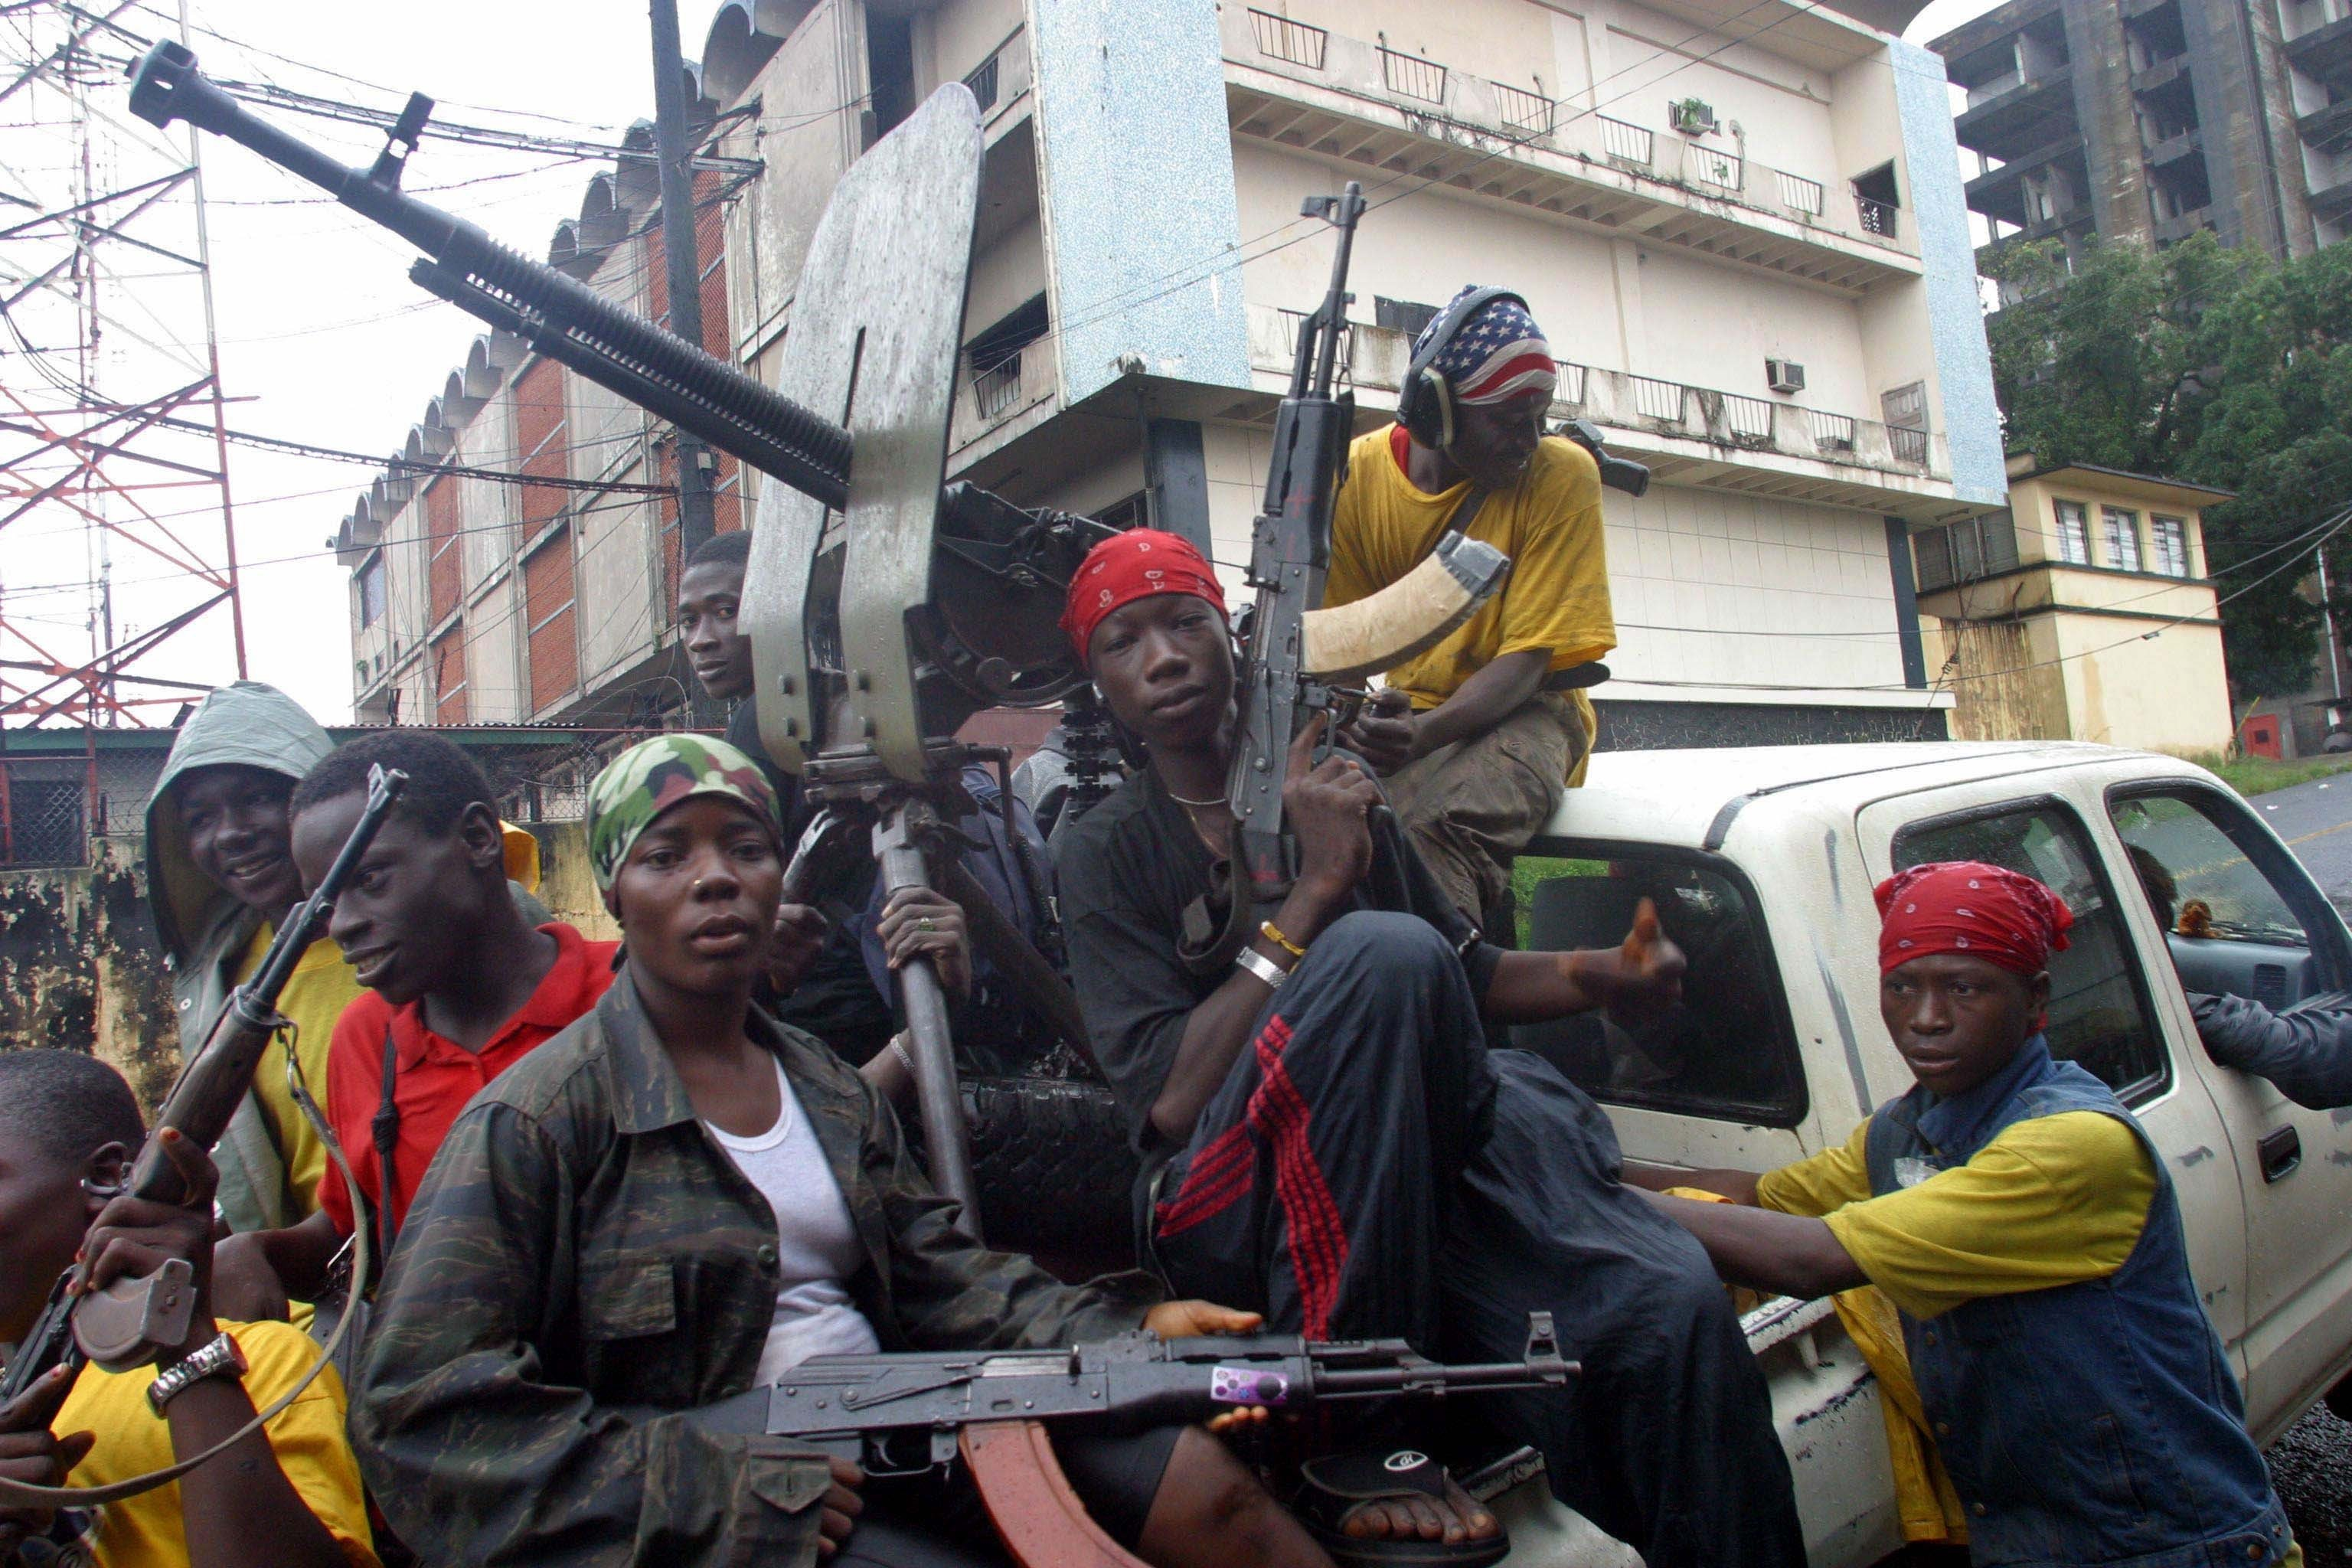 Guerilla fighters loyal to President Charles Taylor prepare themselves in Monrovia, Liberia, July 30, 2003. (Reuters)